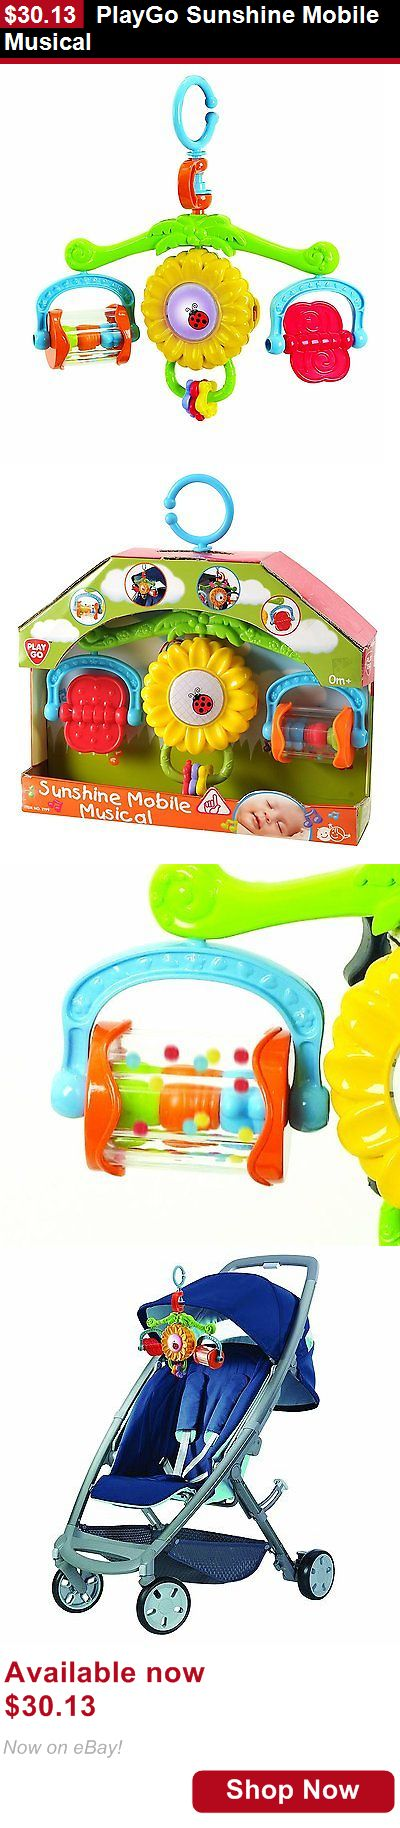 Crib Toys: Playgo Sunshine Mobile Musical BUY IT NOW ONLY: $30.13